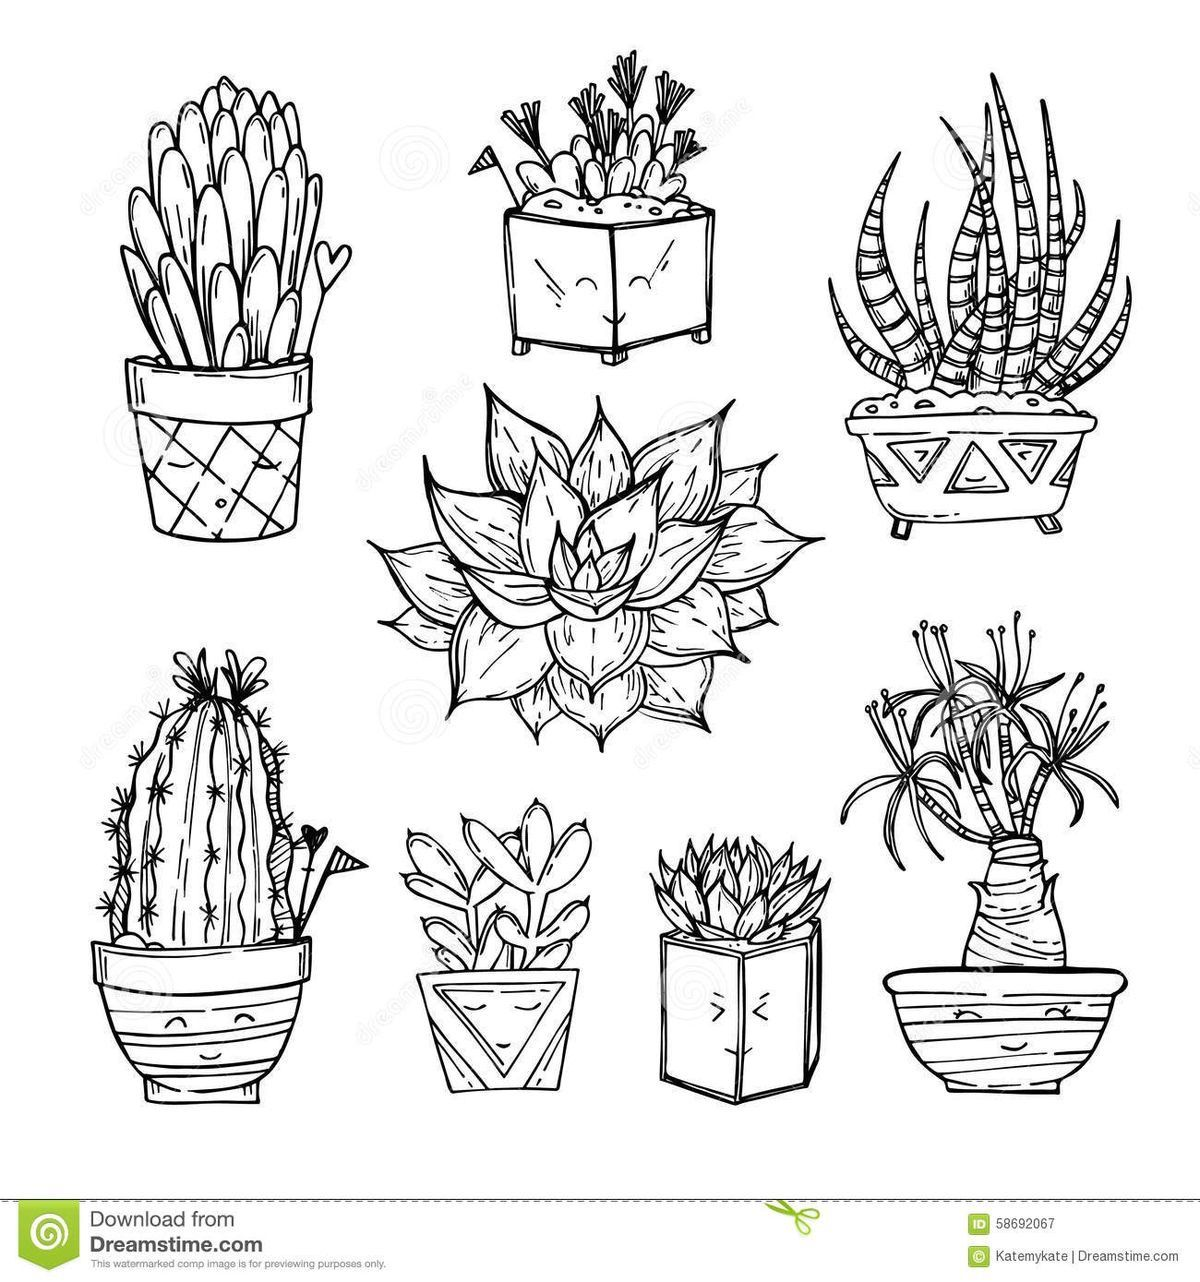 cactus drawing 17 best cactus printables images on pinterest desert art drawing cactus